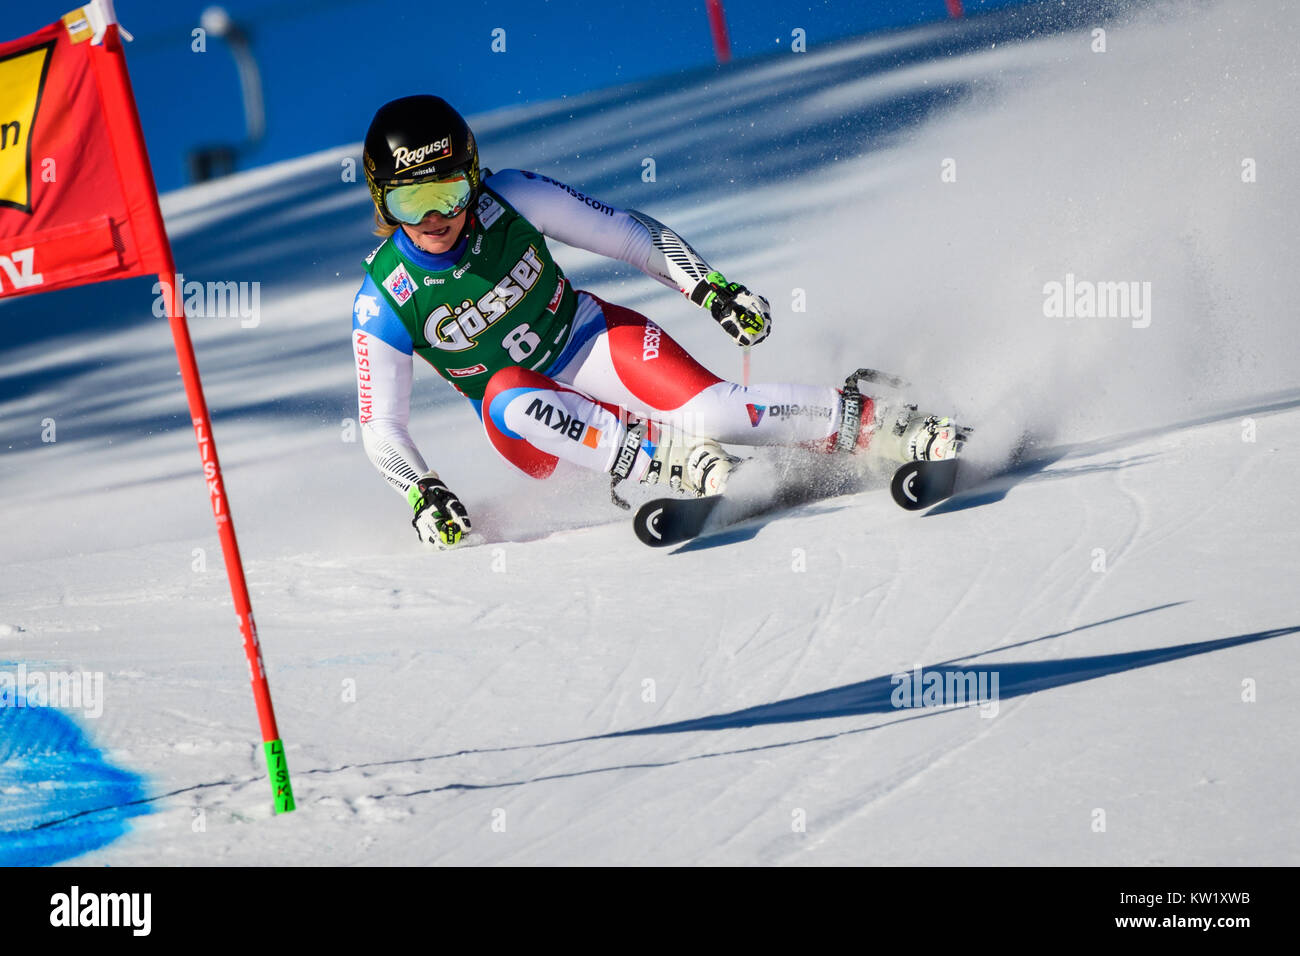 Lienz, Austria. 29th Dec, 2017. Lara Gut of Switzerland competes during the FIS World Cup Ladies Giant Slalom race - Stock Image